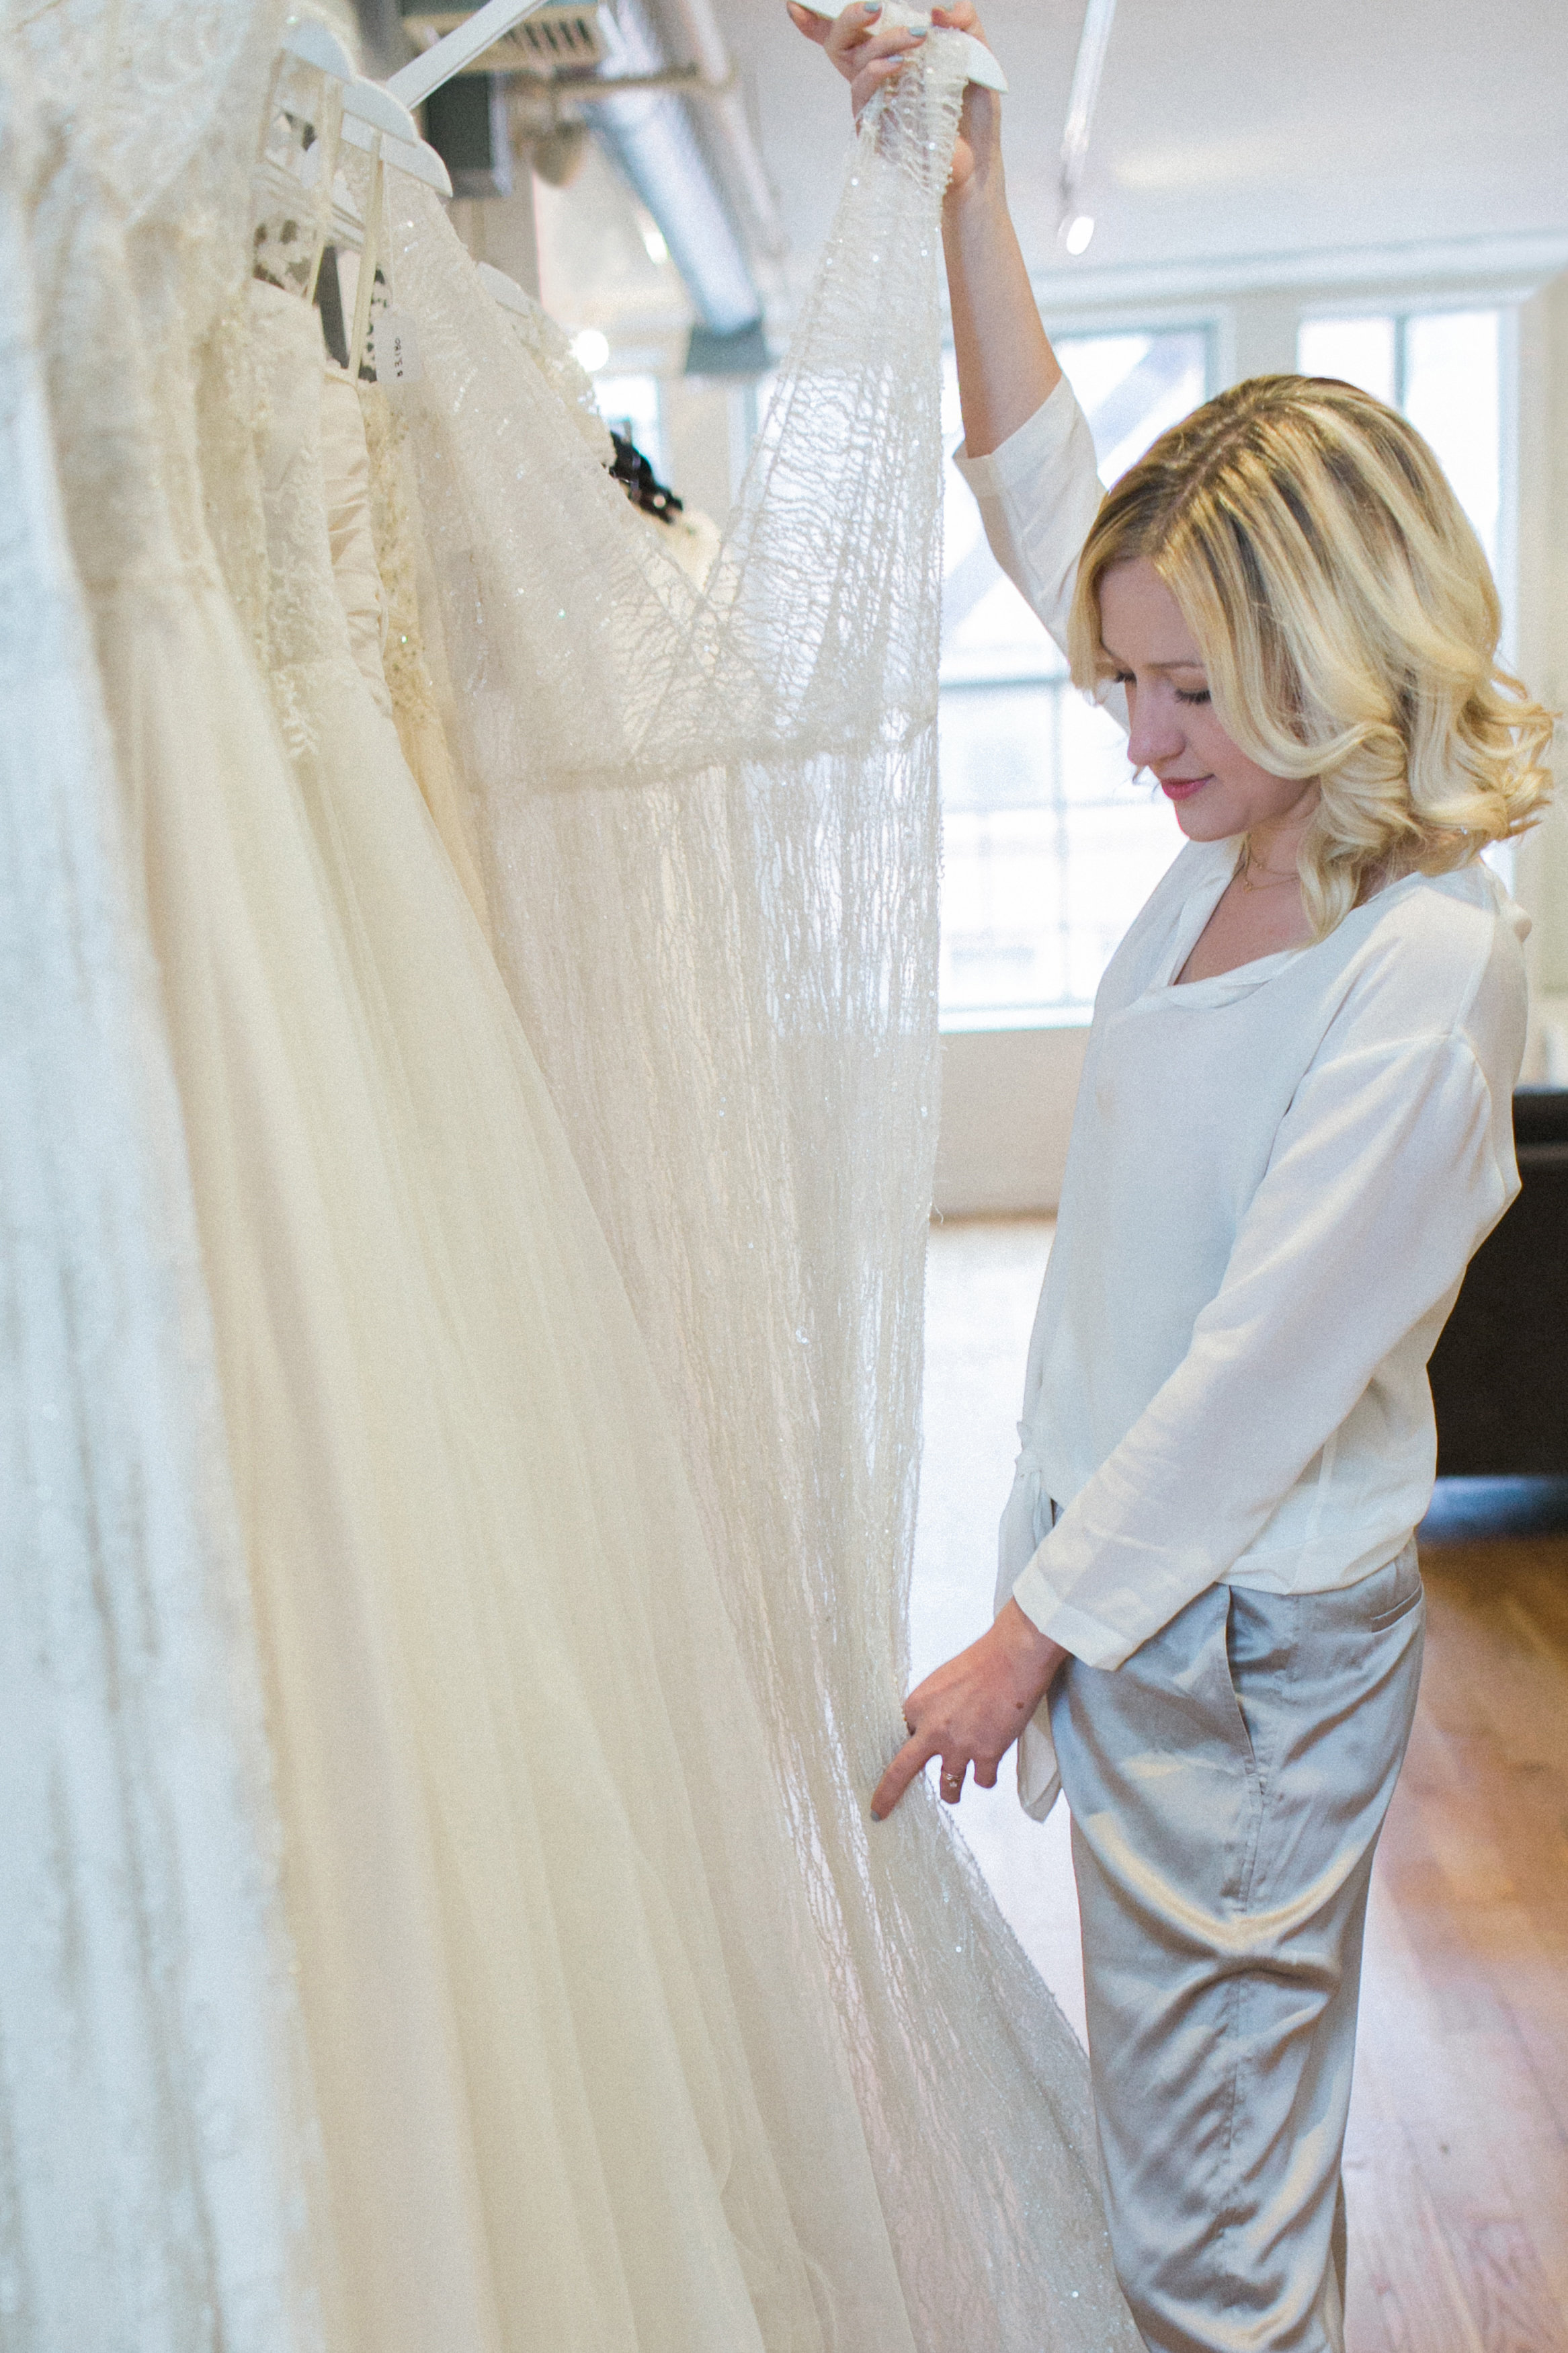 Photo of founder Camille Wynn by Alexis June Weddings